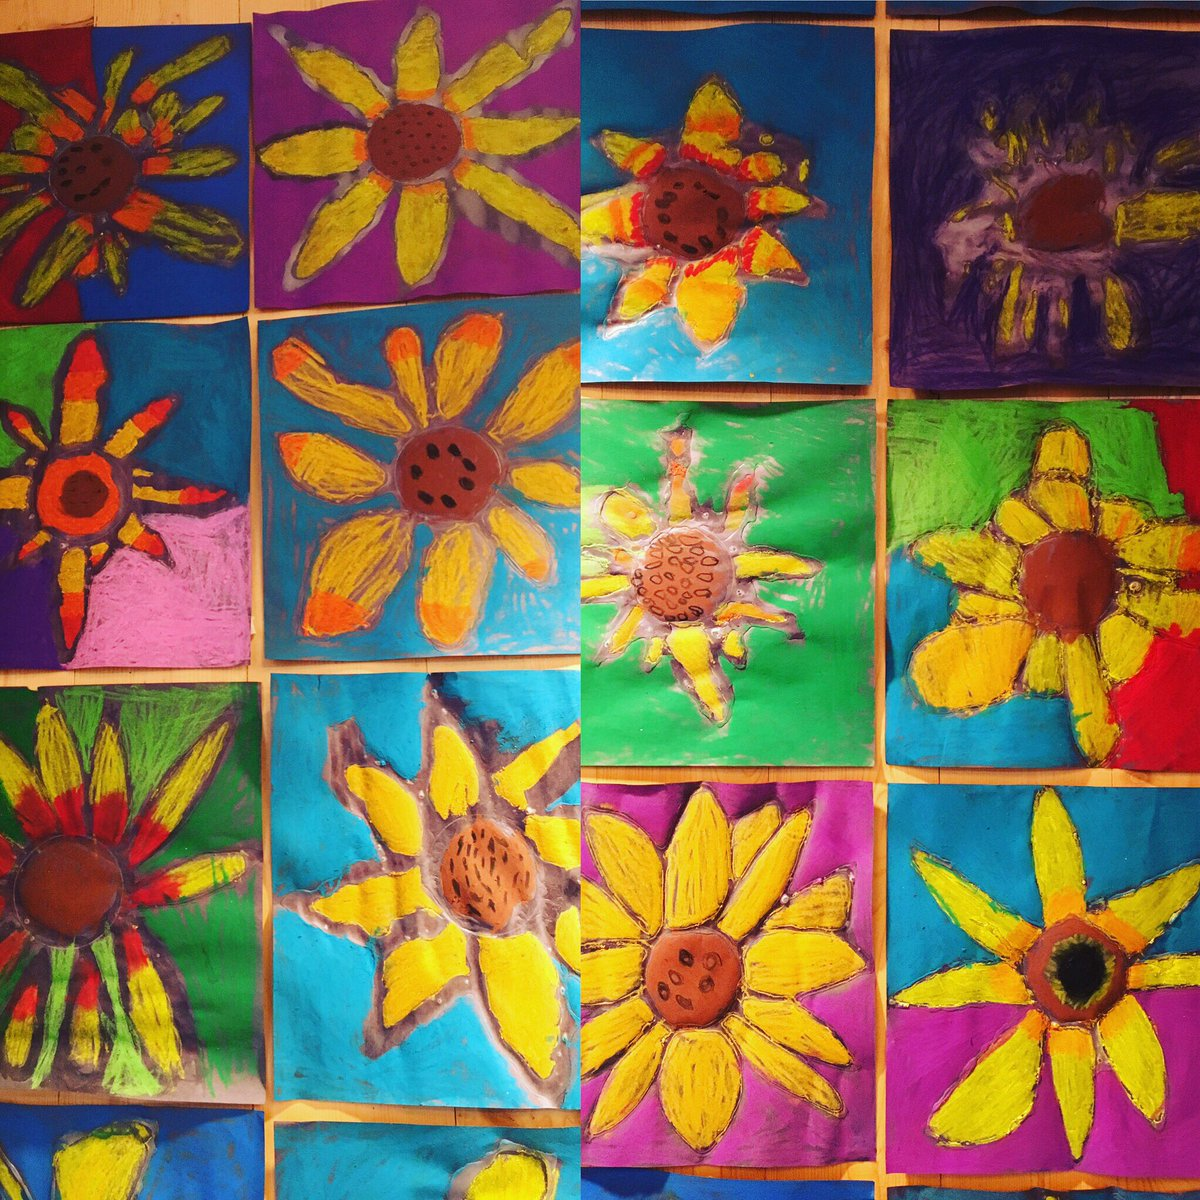 @SD63CordovaBay @sd63schools primary students&#39; beautiful fall artwork! #pumpkins #Sunflowers <br>http://pic.twitter.com/9k9MSIkV44